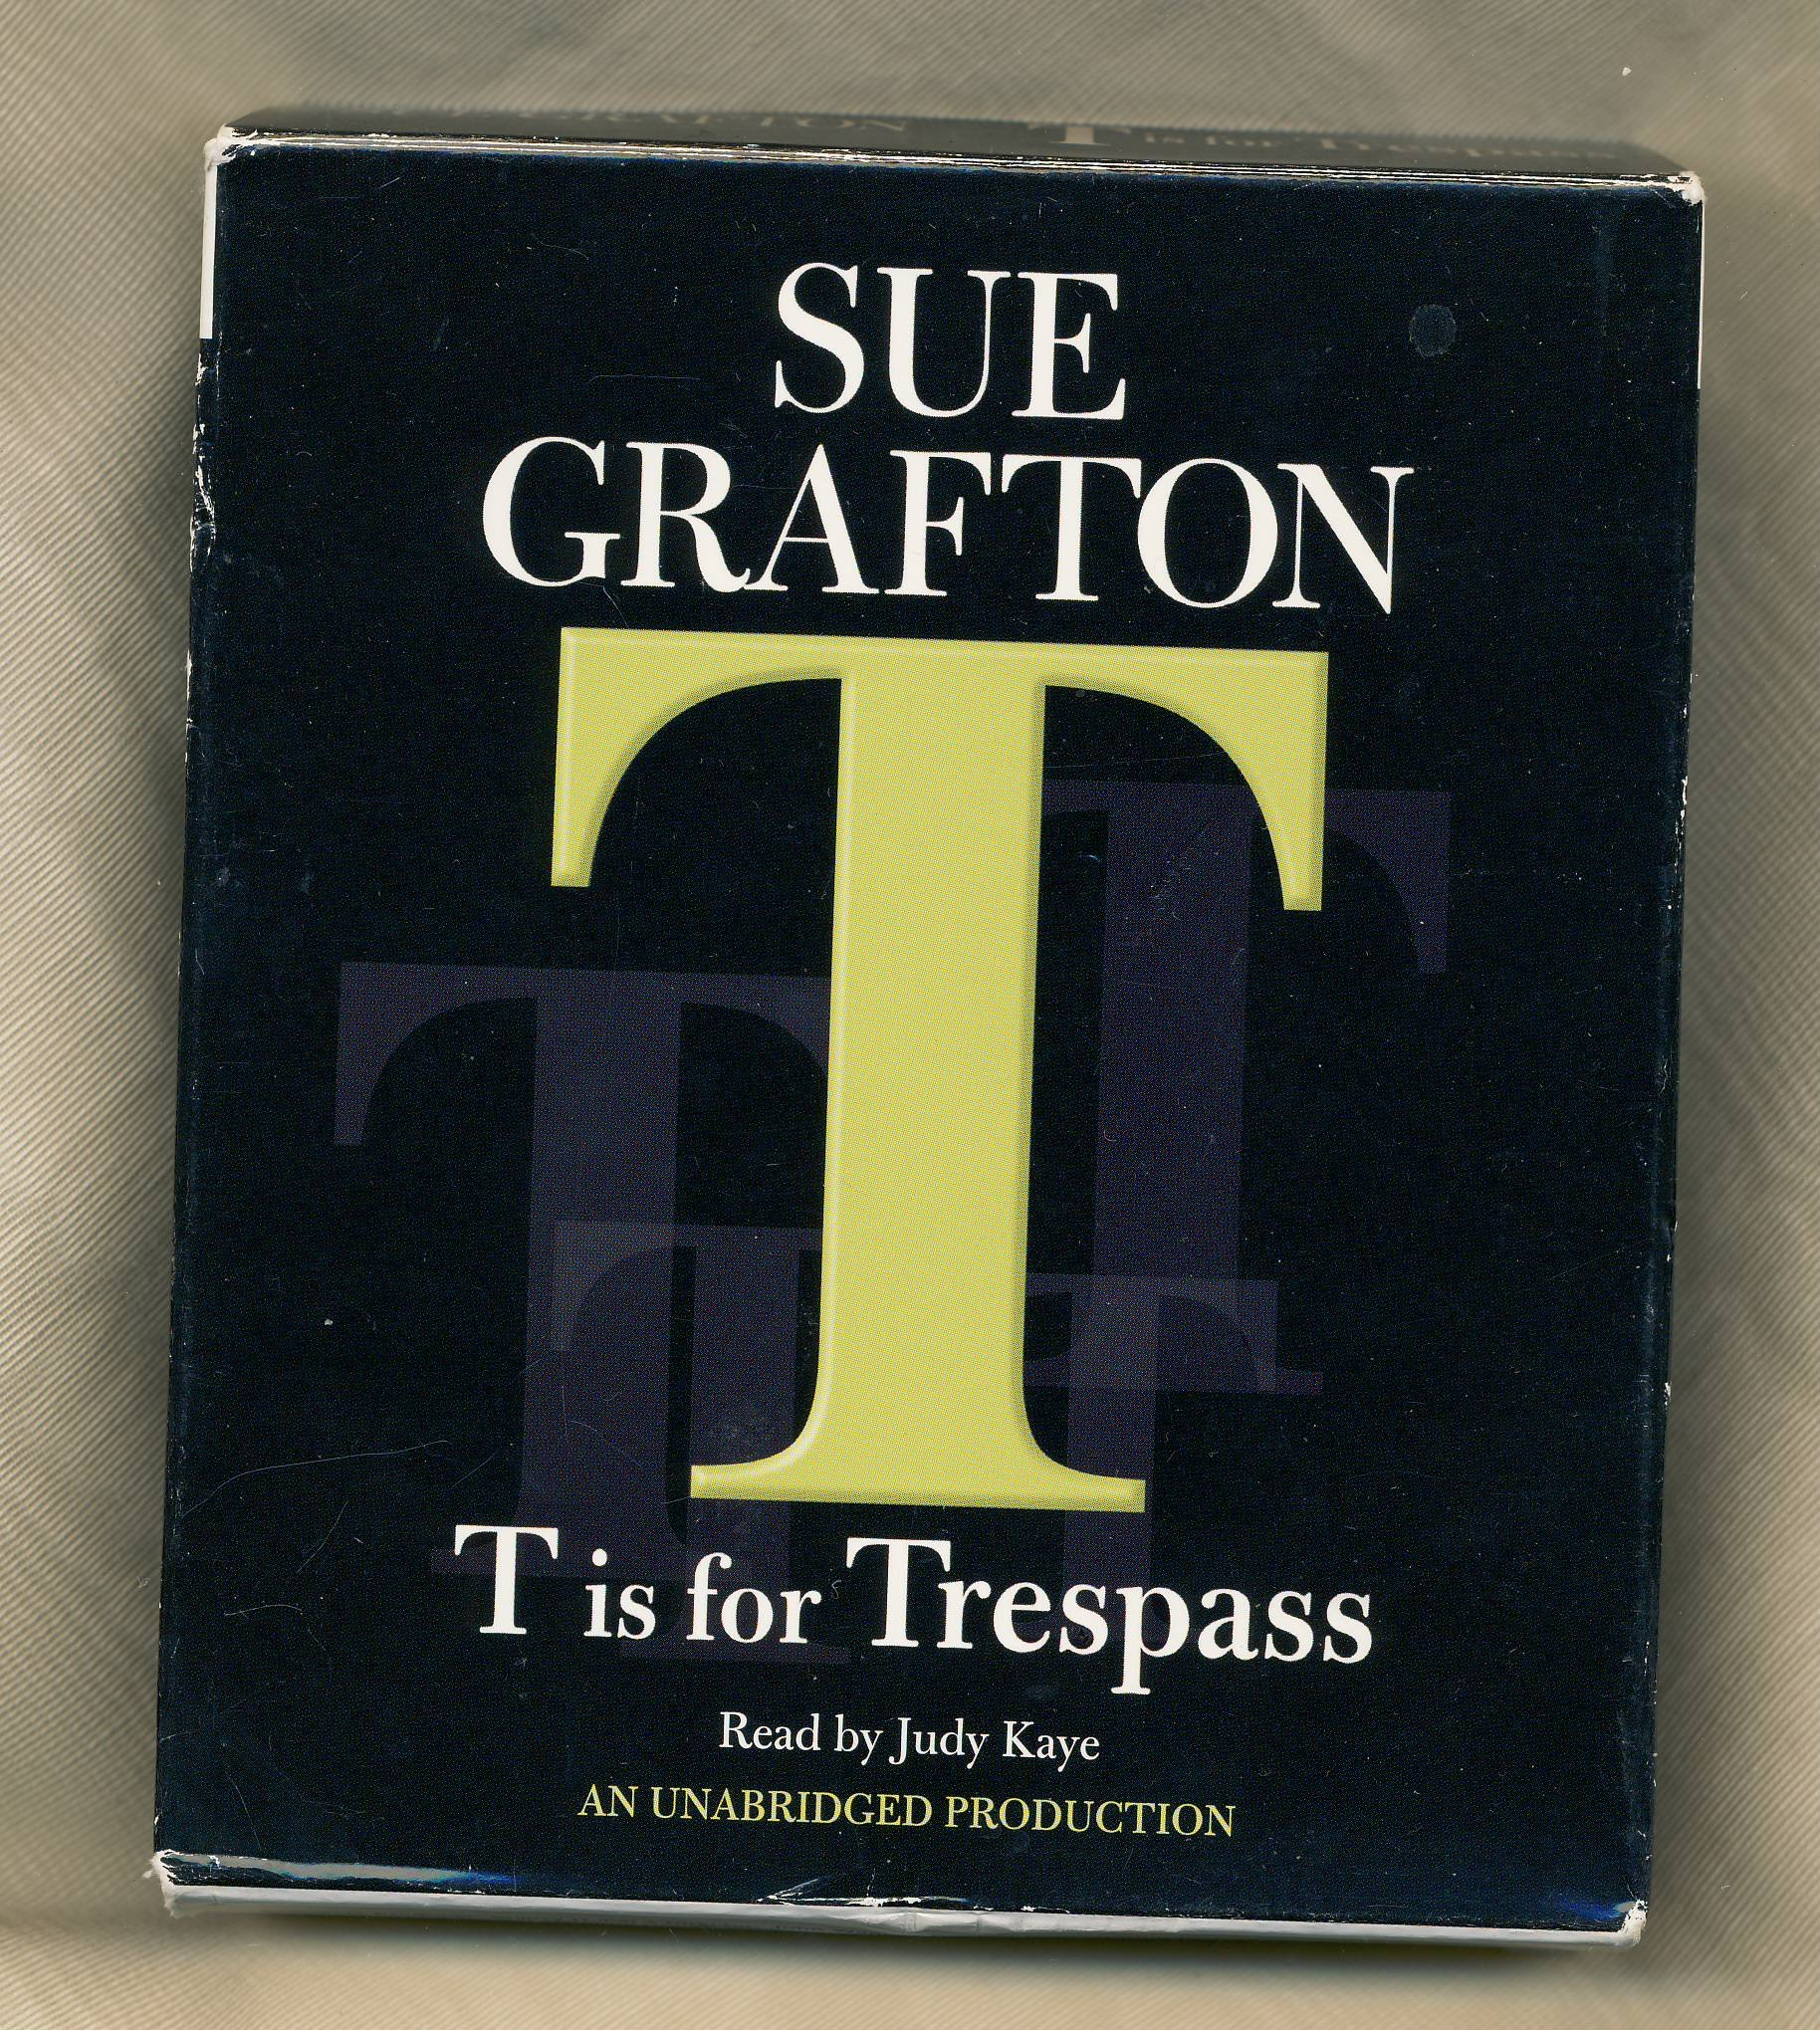 t is for trespass a kinsey millhone novel 20 grafton sue